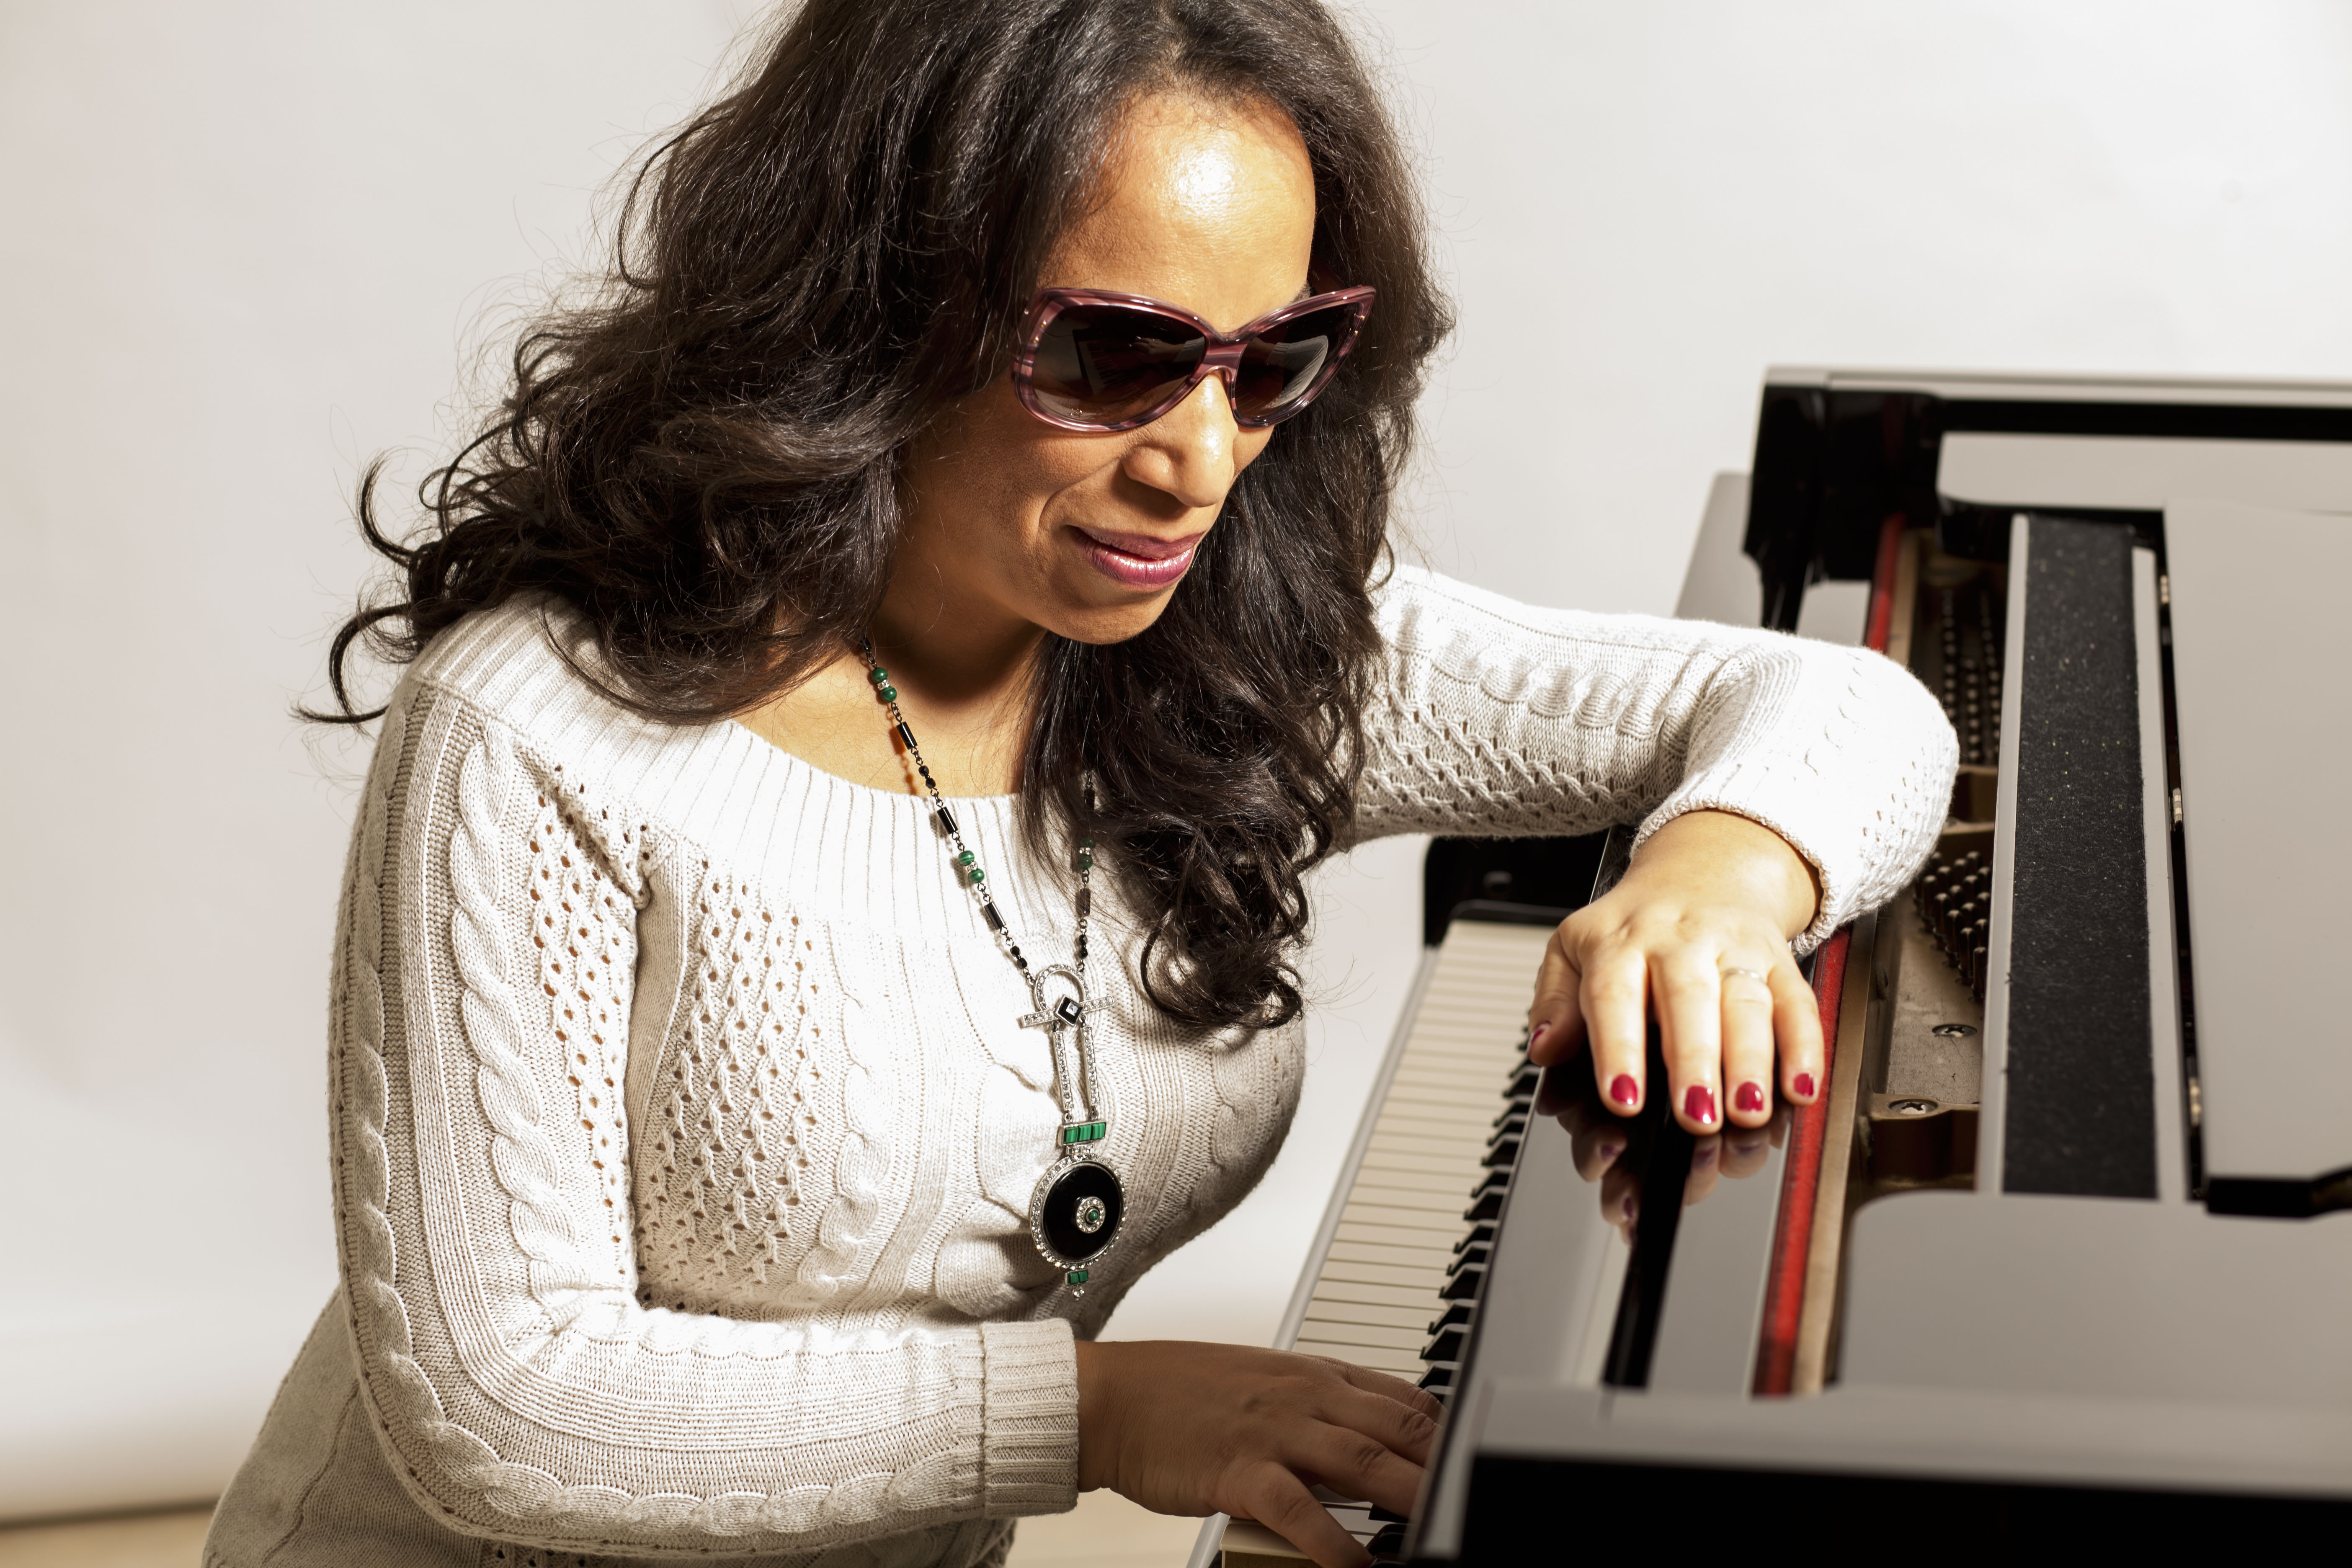 Picture of singer Kiskadee at her grand piano